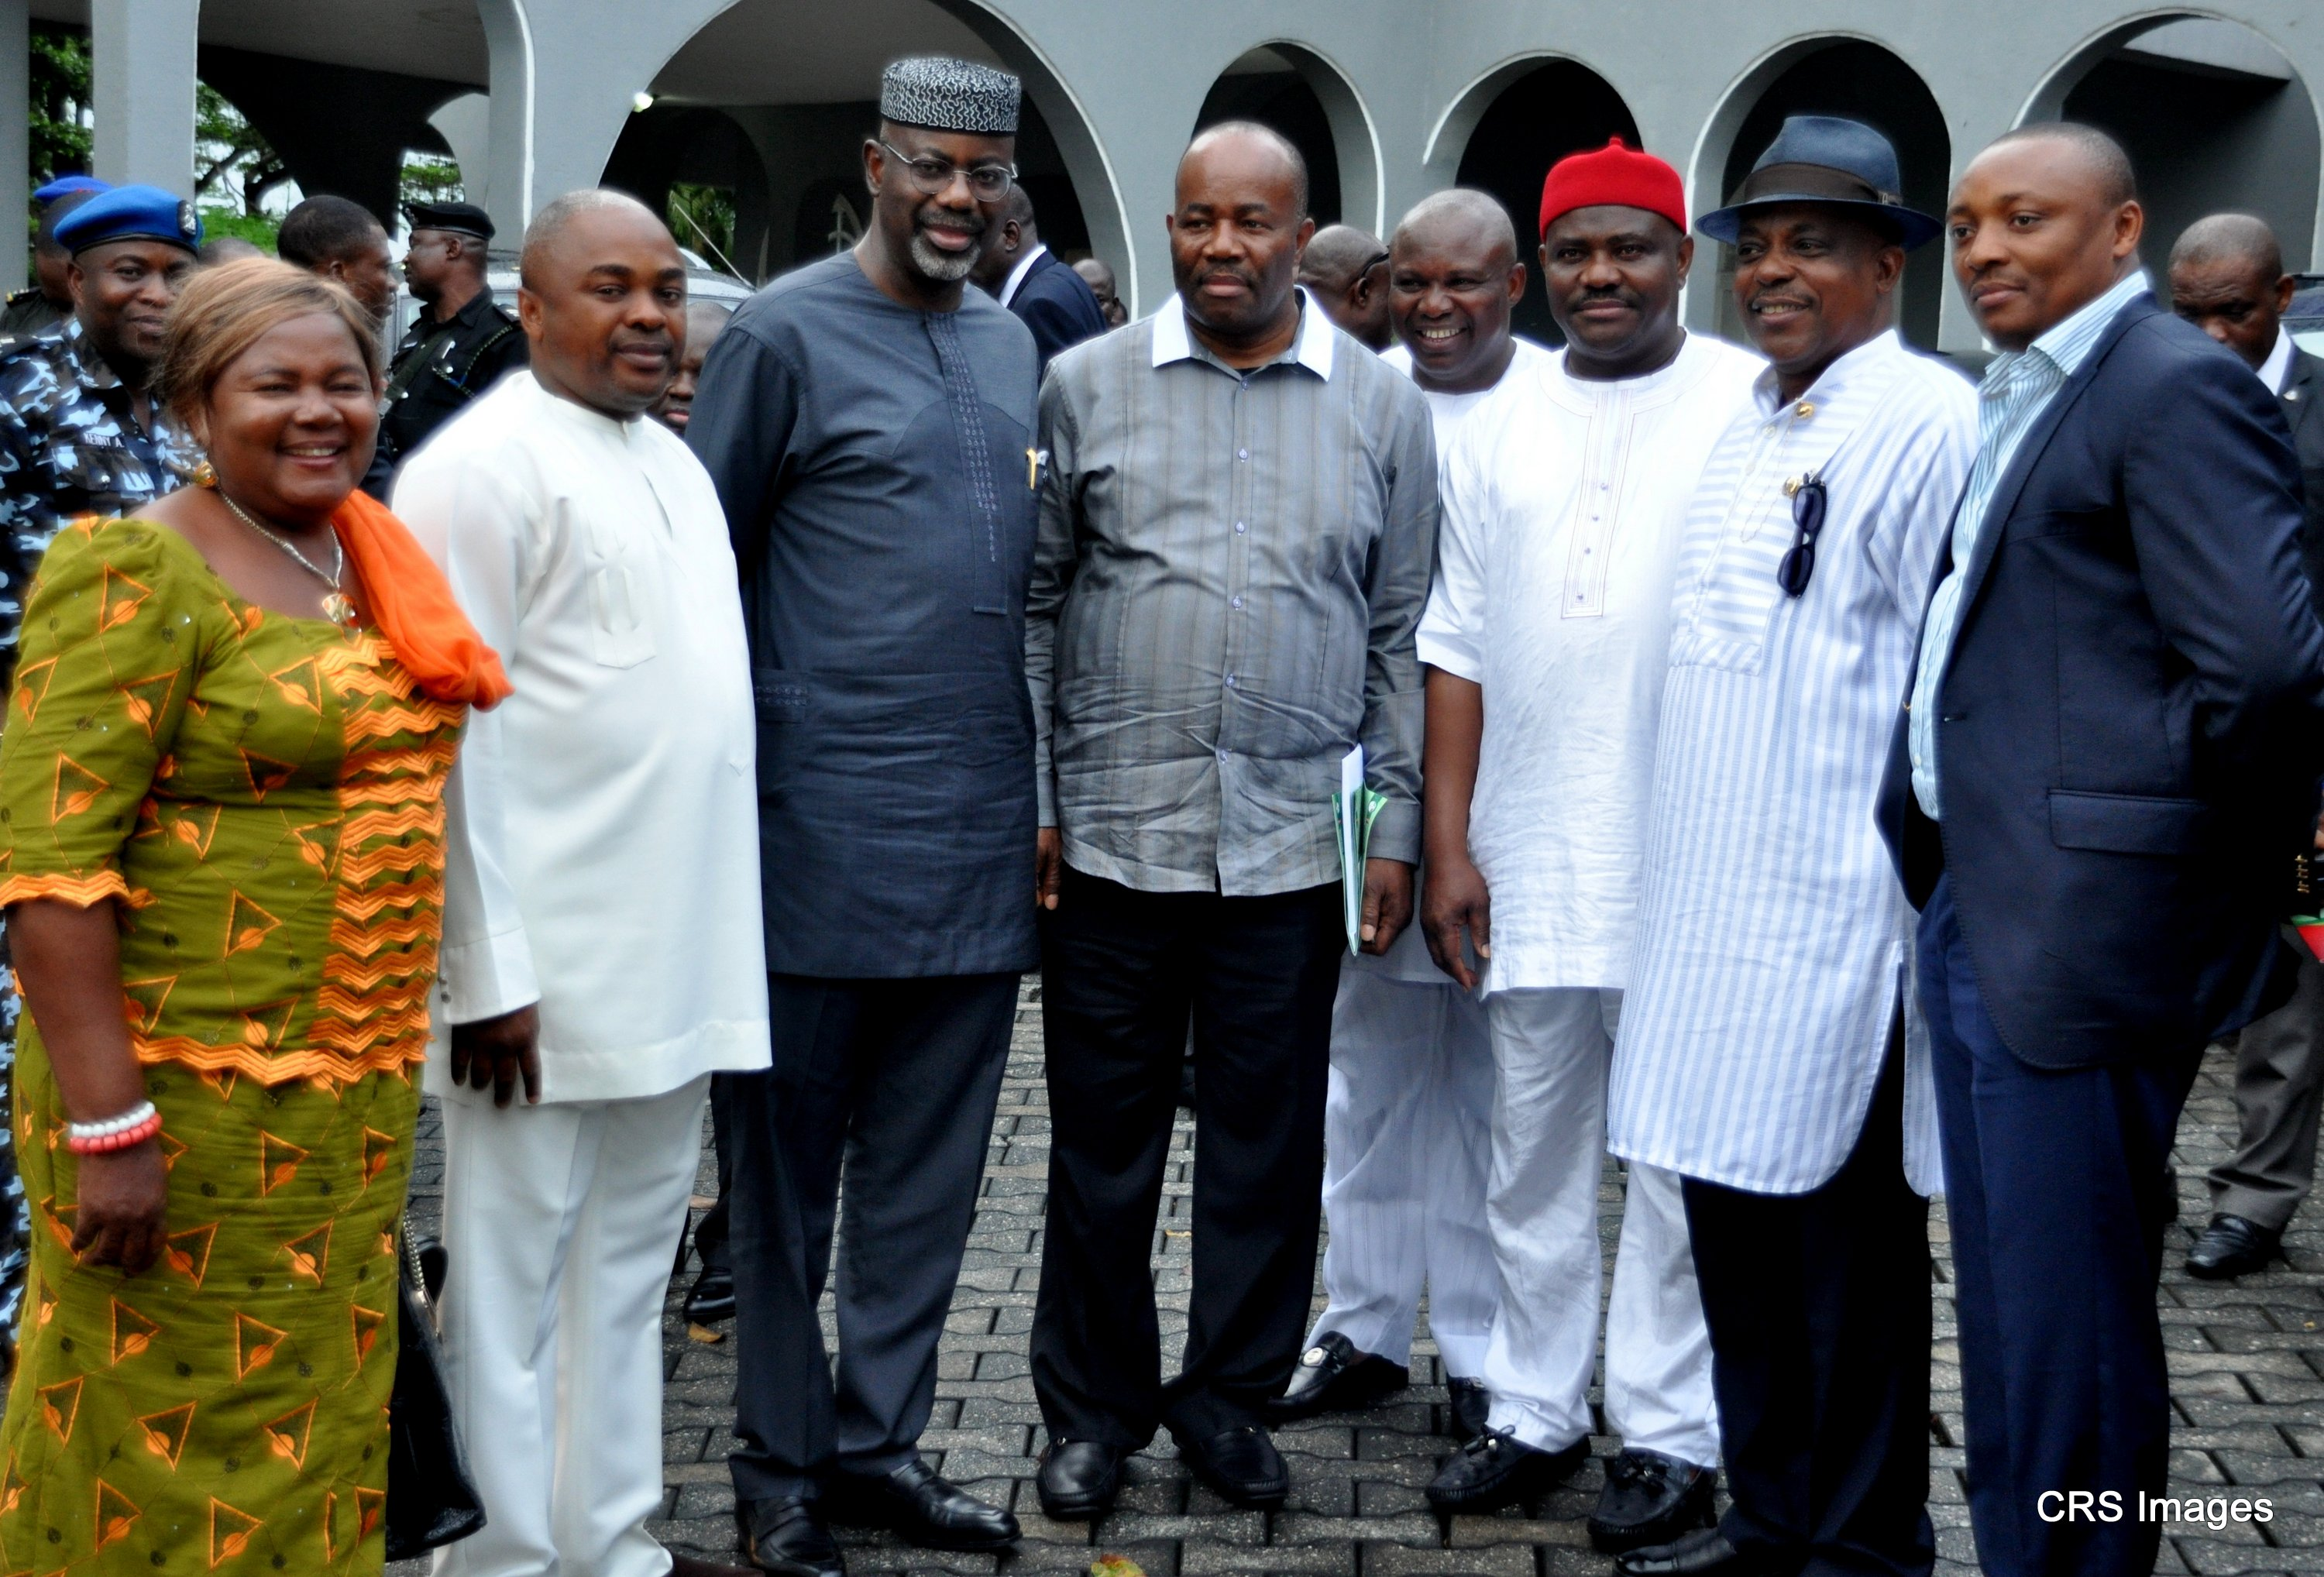 From left: PDP Women Leader S-S,Elizabeth Essien, Speaker, Akwa Ibom State House of Assembly,Hon. Sam Ikon, Cross River State Governor, Senator Liyel Imoke, Chairman, PDP Governors' Forum and Governor Akwa Ibom State, Chief Godswill Akpabio, Publicity Secretary of the zone, Imo-Owo Okpokpo, Minister of State for Education,Chief Nyesom Wike, National Organizing Secretary, Prince Uche Secondus,Hon. Emma Ekon member House of Rep. shortly after the PDP,South-South expanded zonal executive committee meeting in Calabar.